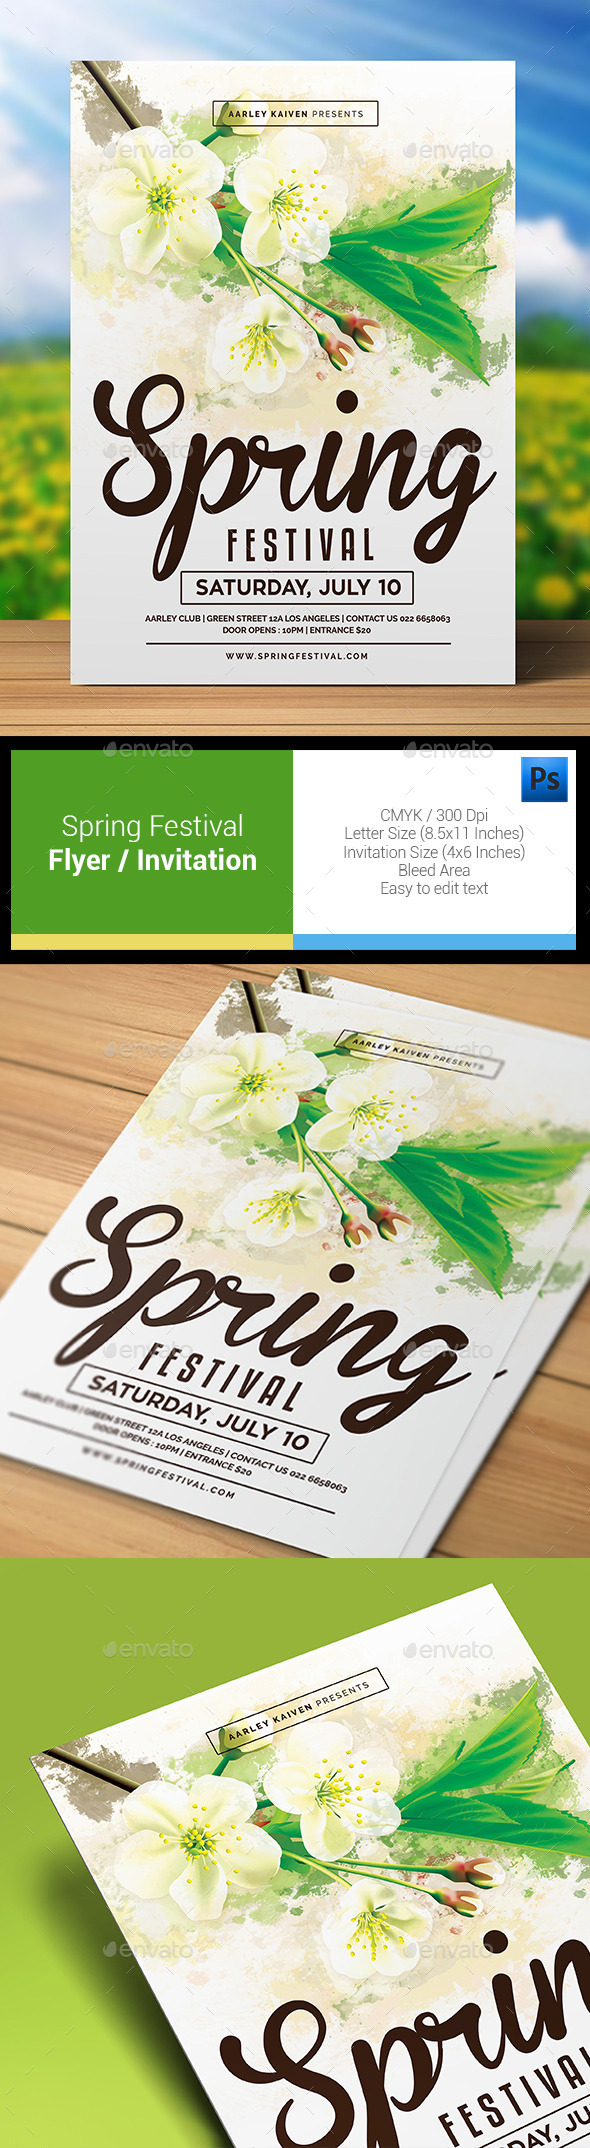 Spring Festival Flyer Invitation